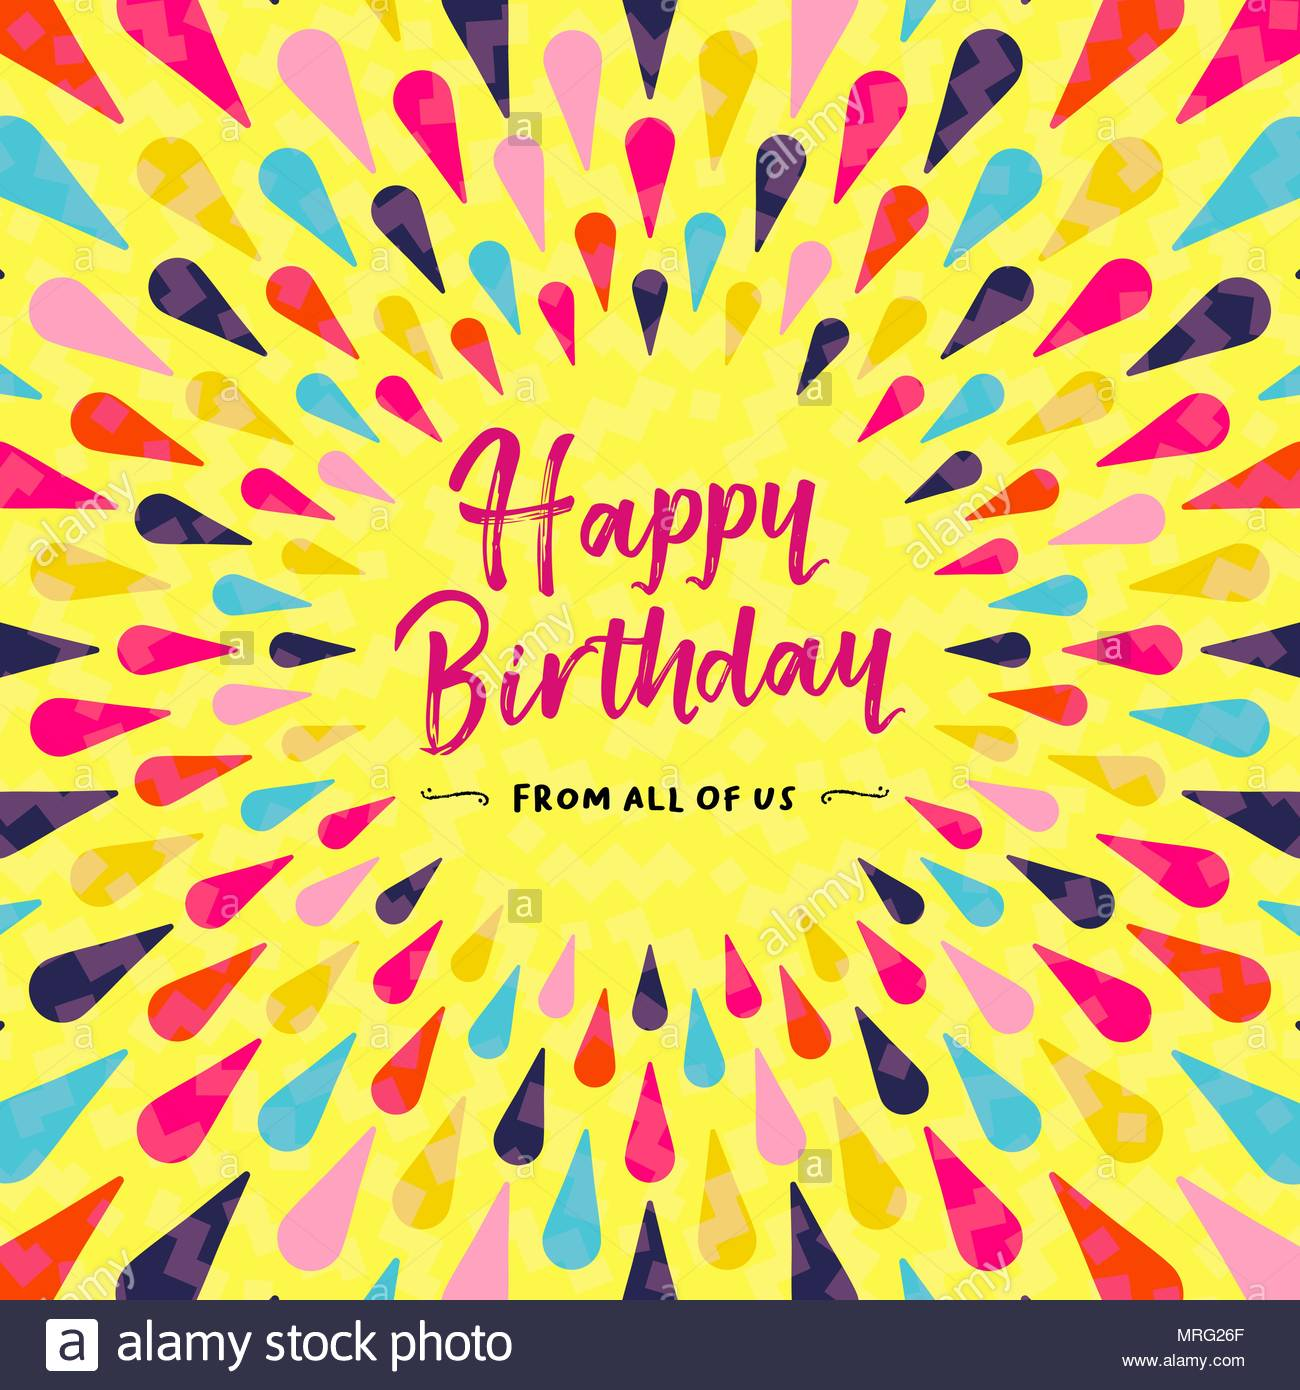 Happy birthday greeting card design for party invitation or special happy birthday greeting card design for party invitation or special event colorful festive decoration with typography quote eps10 vector stopboris Image collections